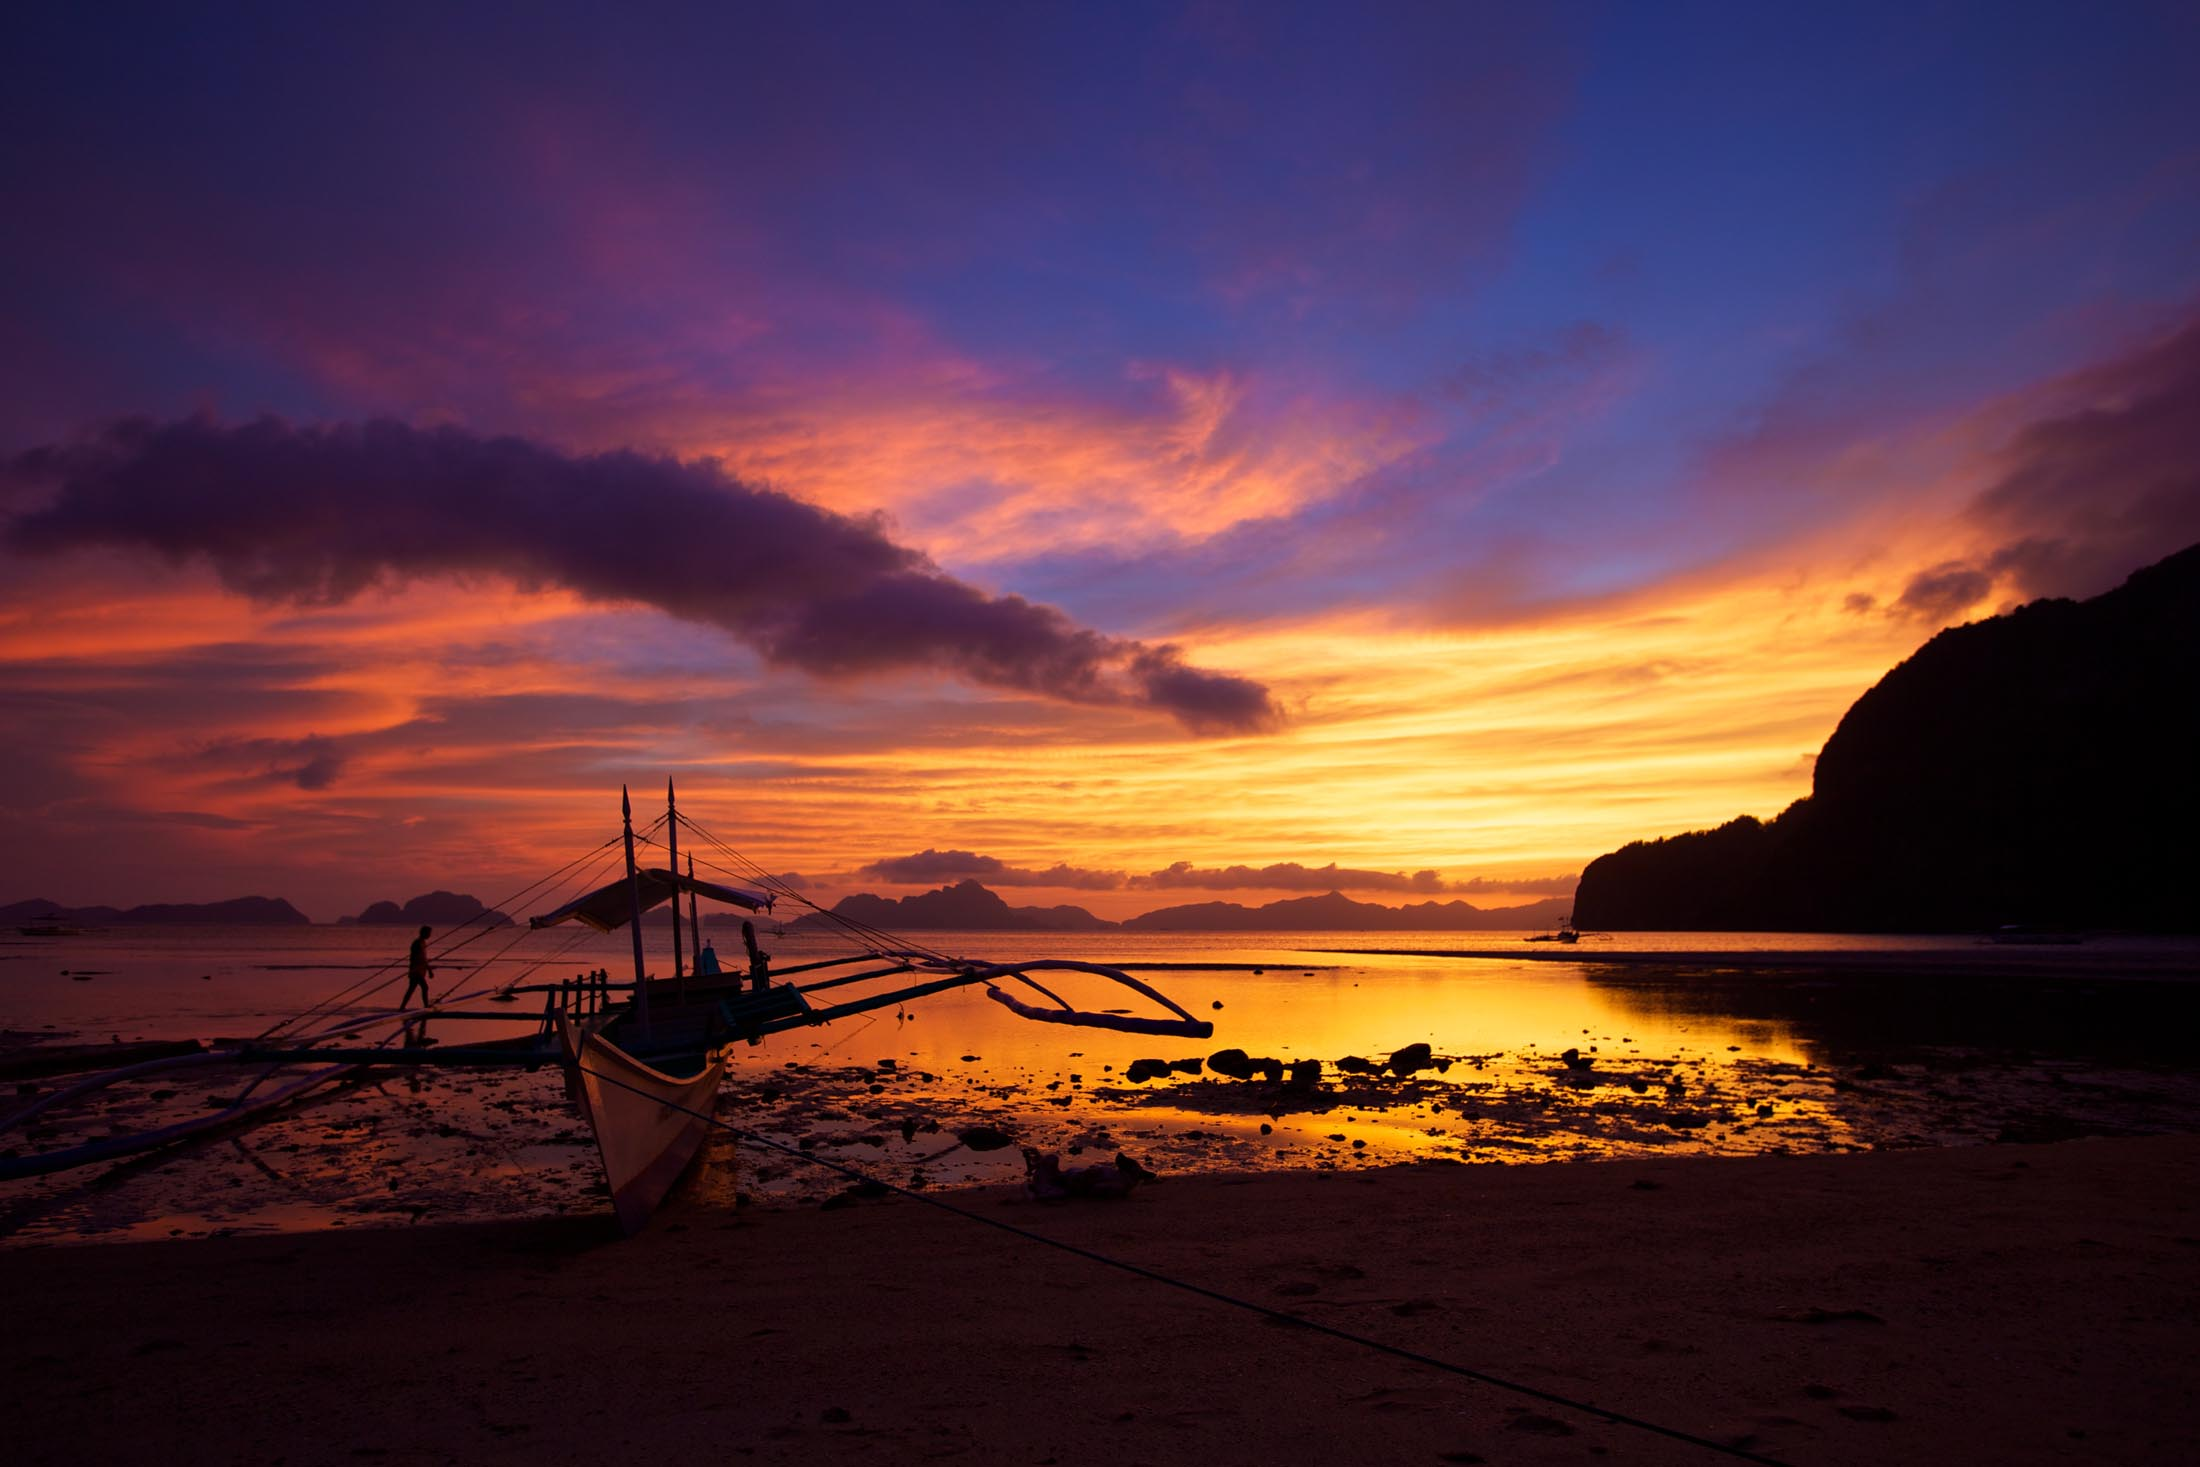 Sunset on Palawan, Philippines